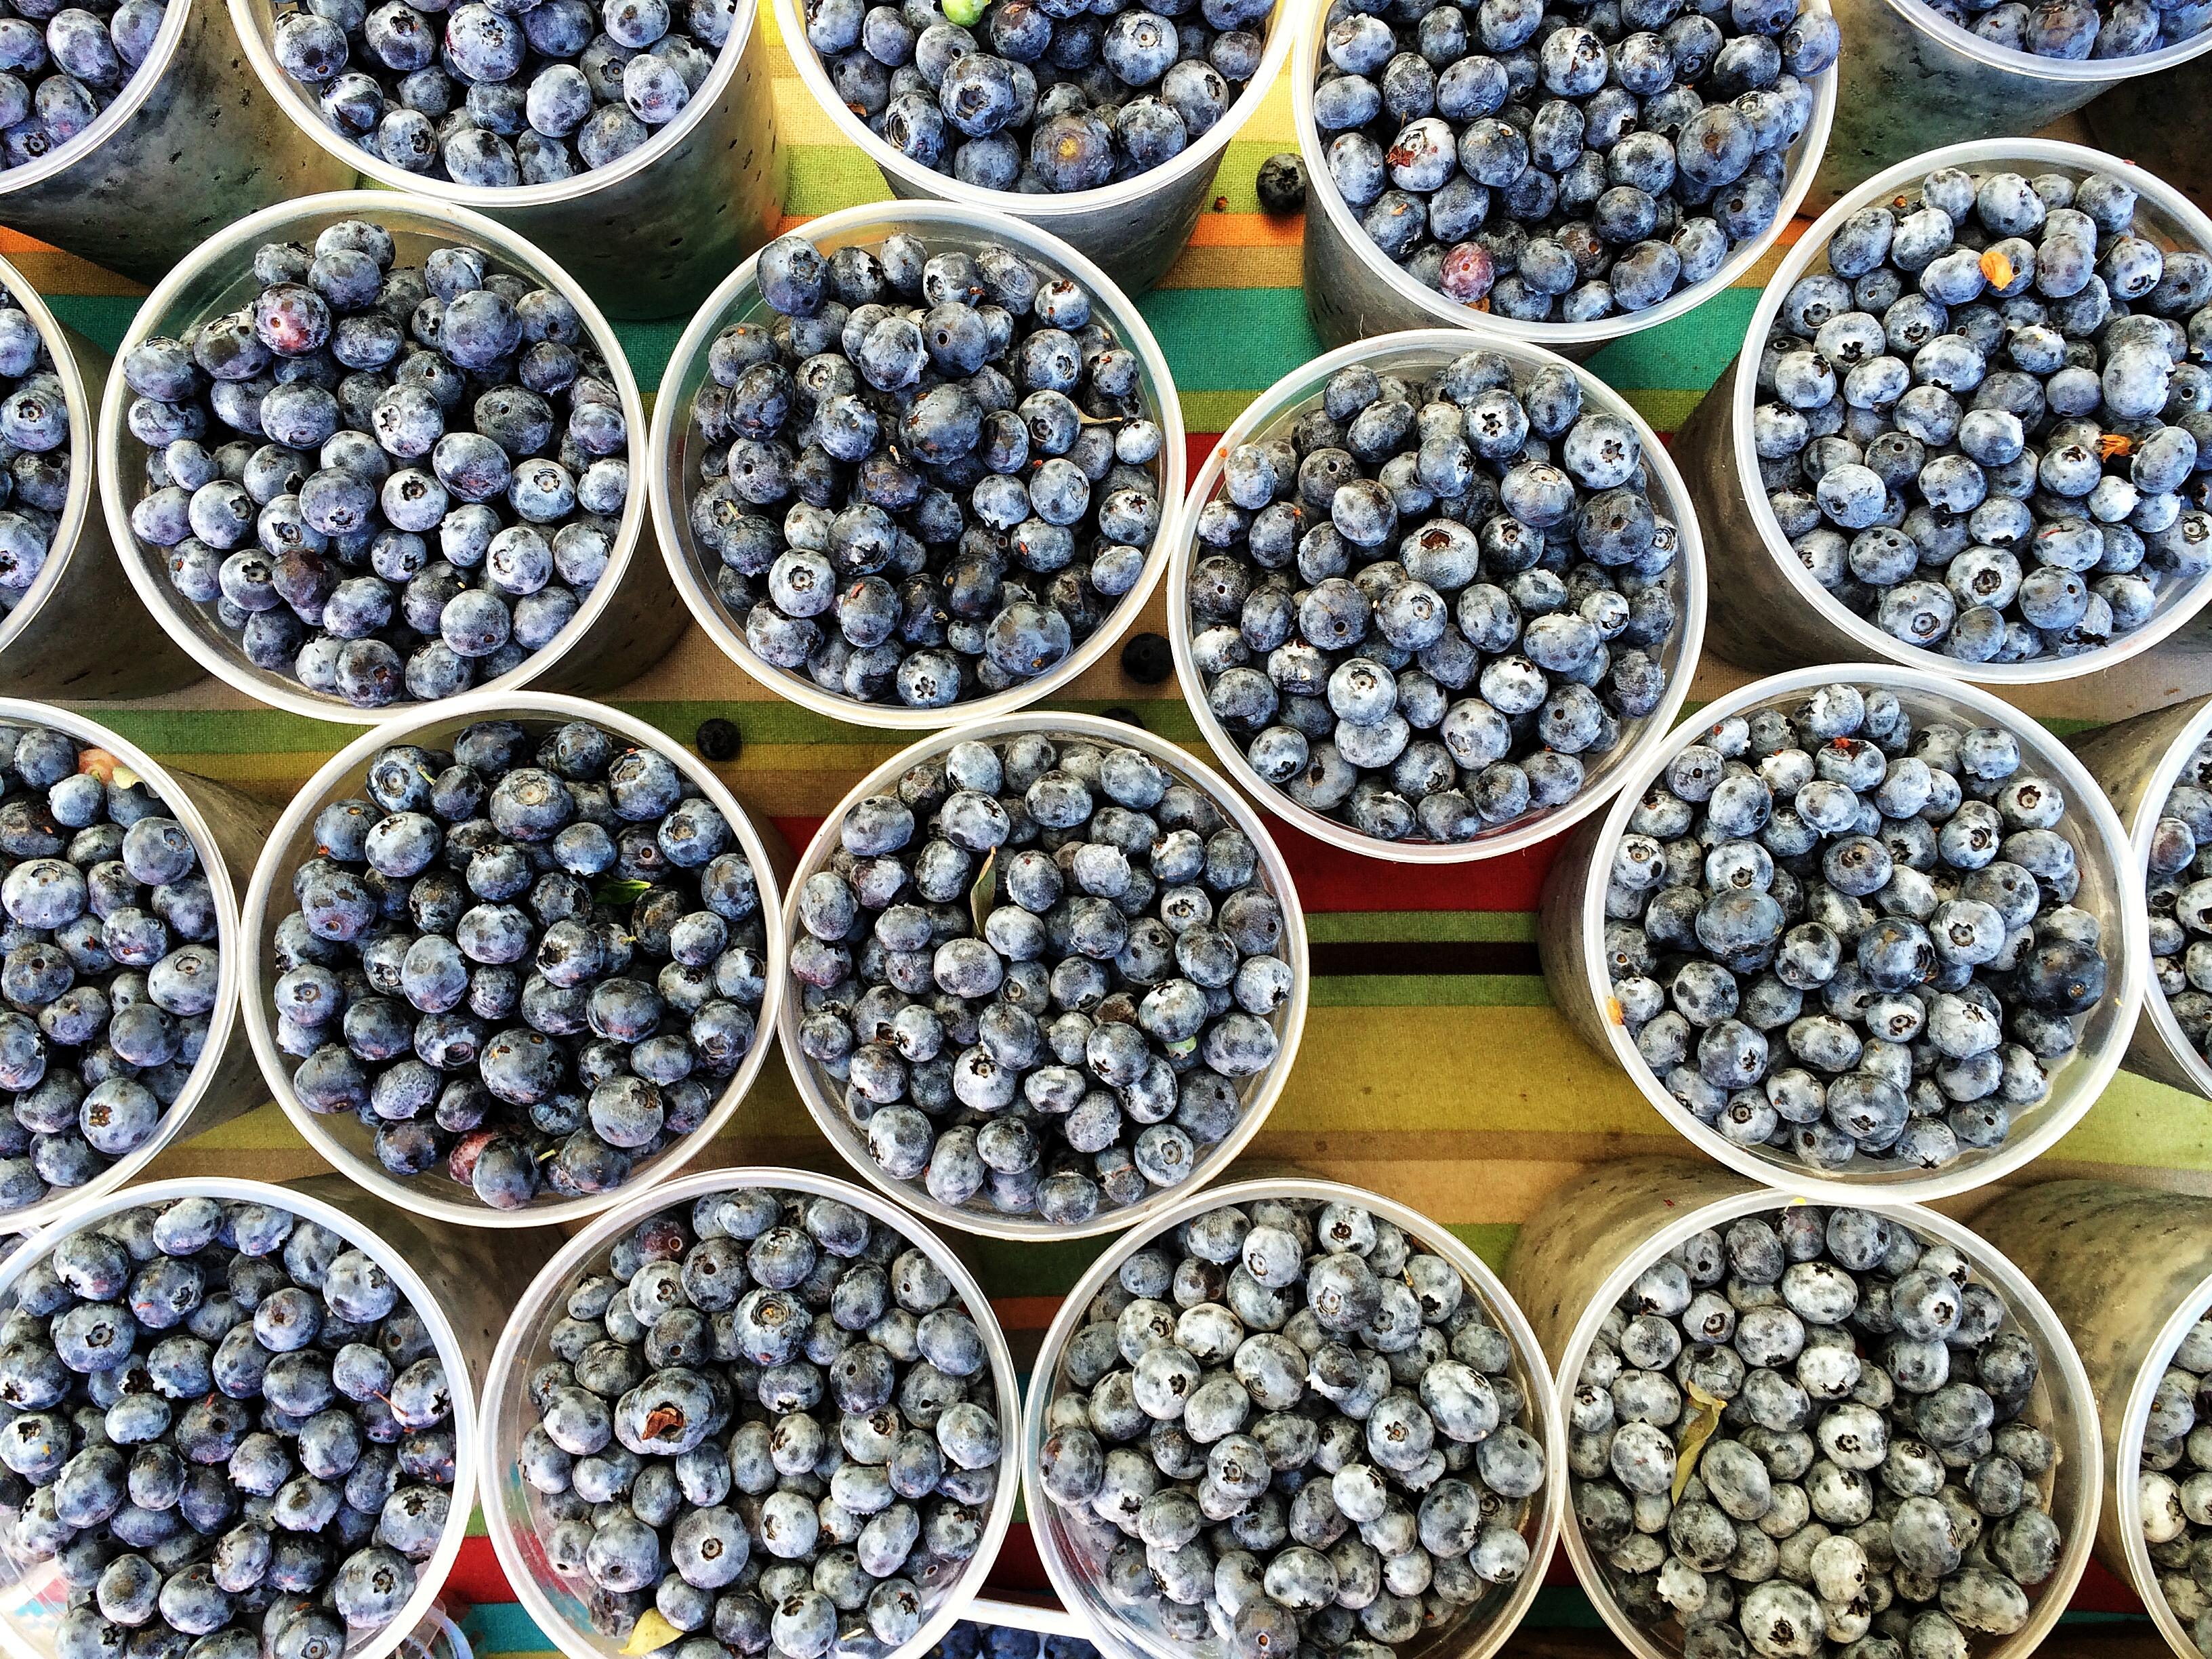 Organic blueberries in July